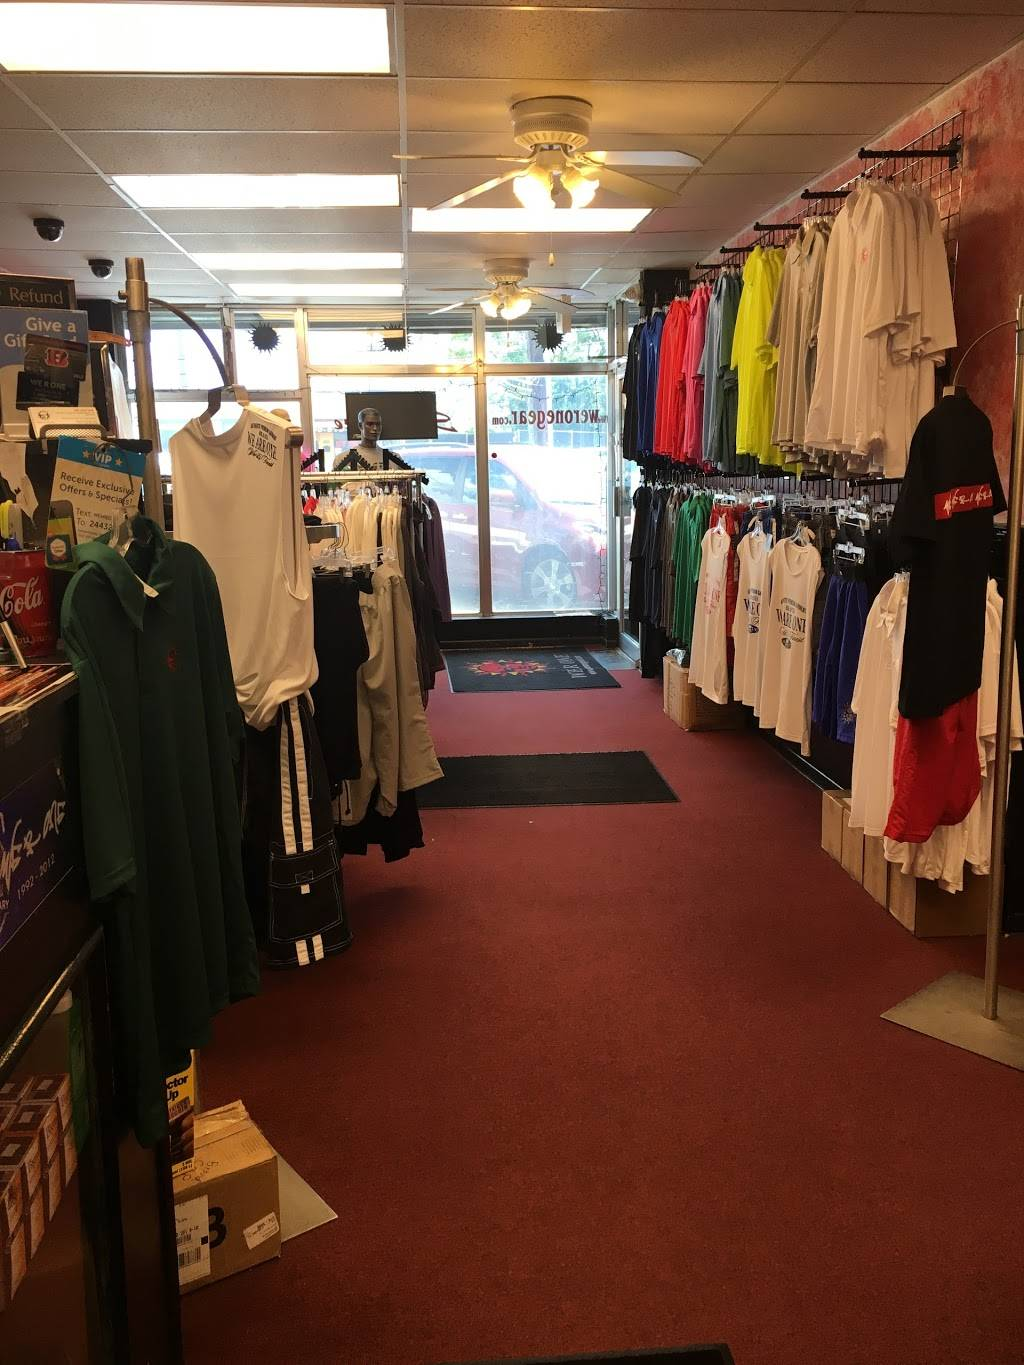 WE ARE ONE CLOTHING STORE - clothing store  | Photo 2 of 6 | Address: 4931 Suitland Rd, Hillcrest Heights, MD 20746, USA | Phone: (301) 736-4406